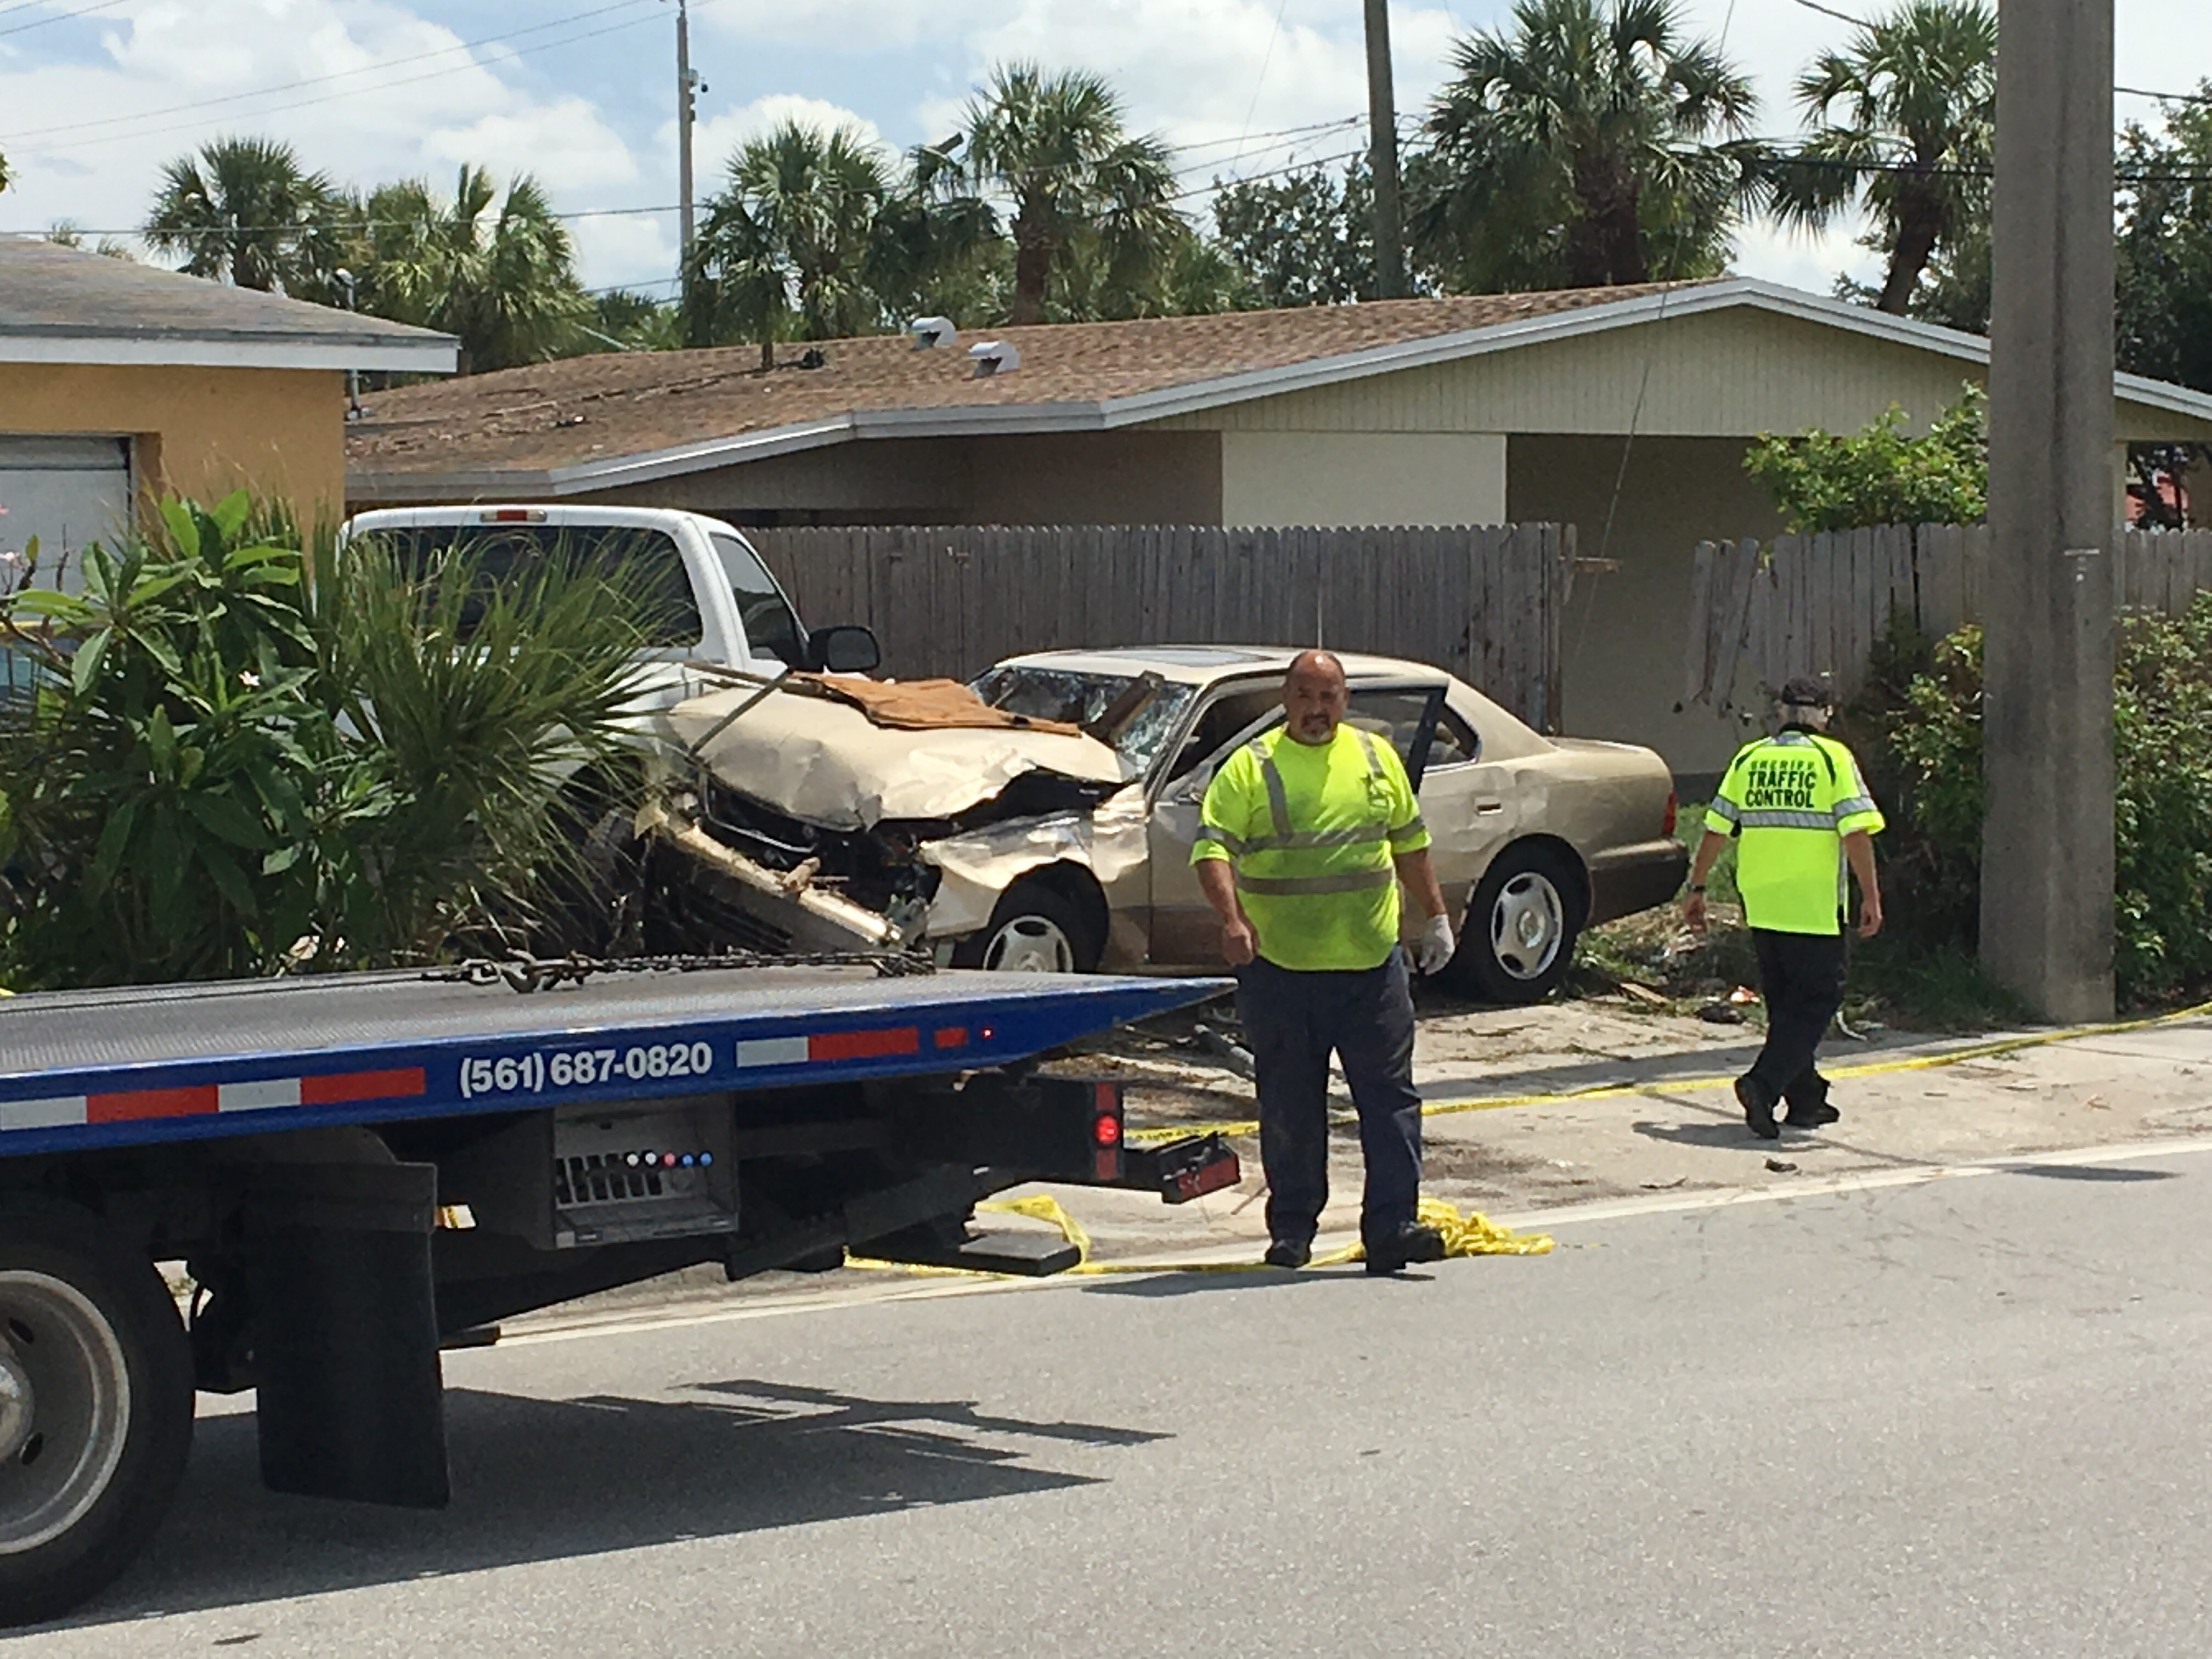 Palm Beach County Sheriffs Office  are on the scene of a fatal accident near 45th Street and N. Shore Drive.